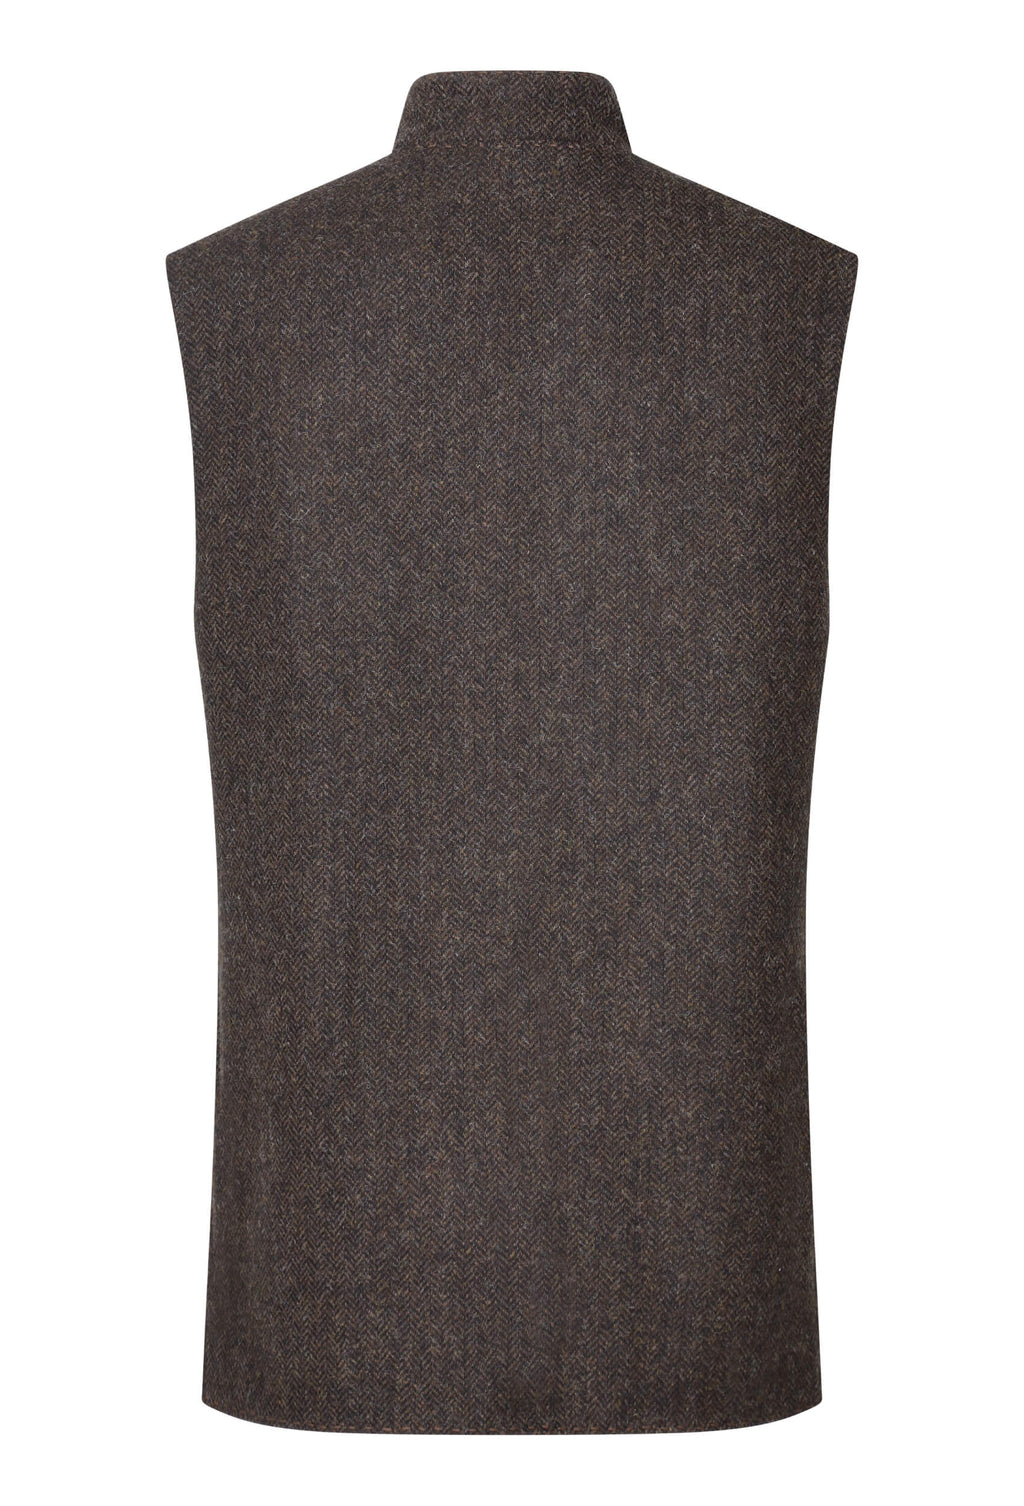 chocolate-brown-herringbone-tweed-gilet-made-in-england